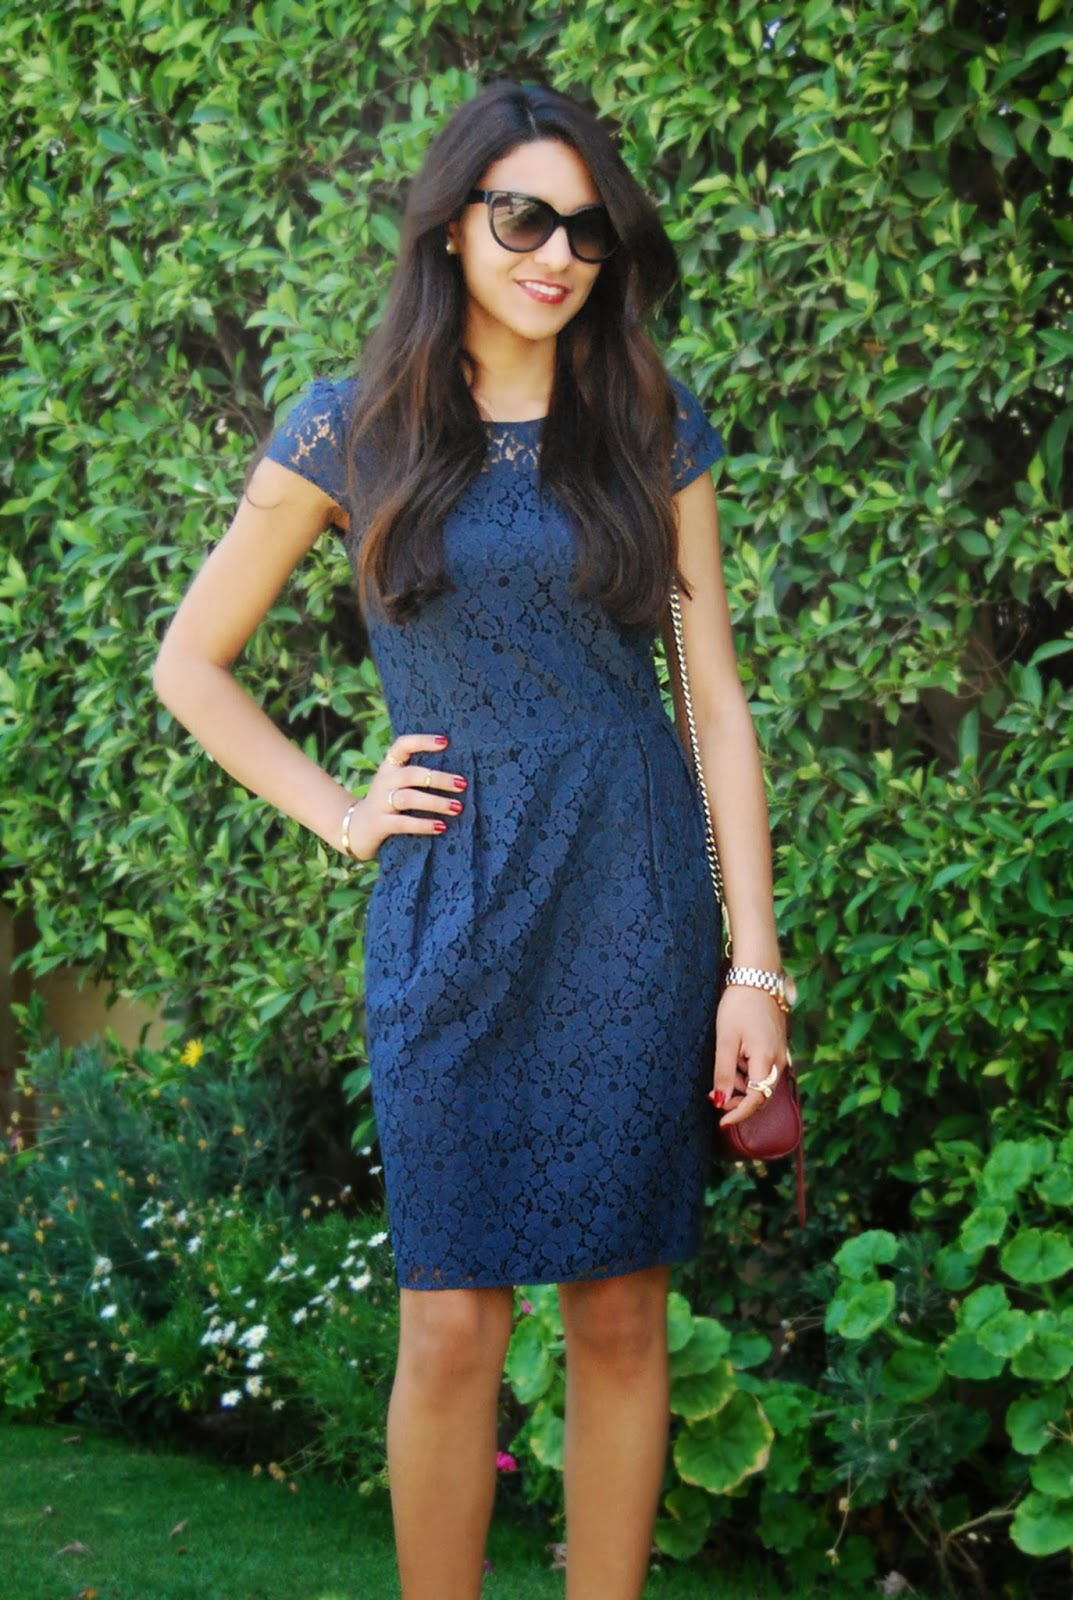 ac6419ce66 Mia s Wardrobe  Outfit post  Blue Lace